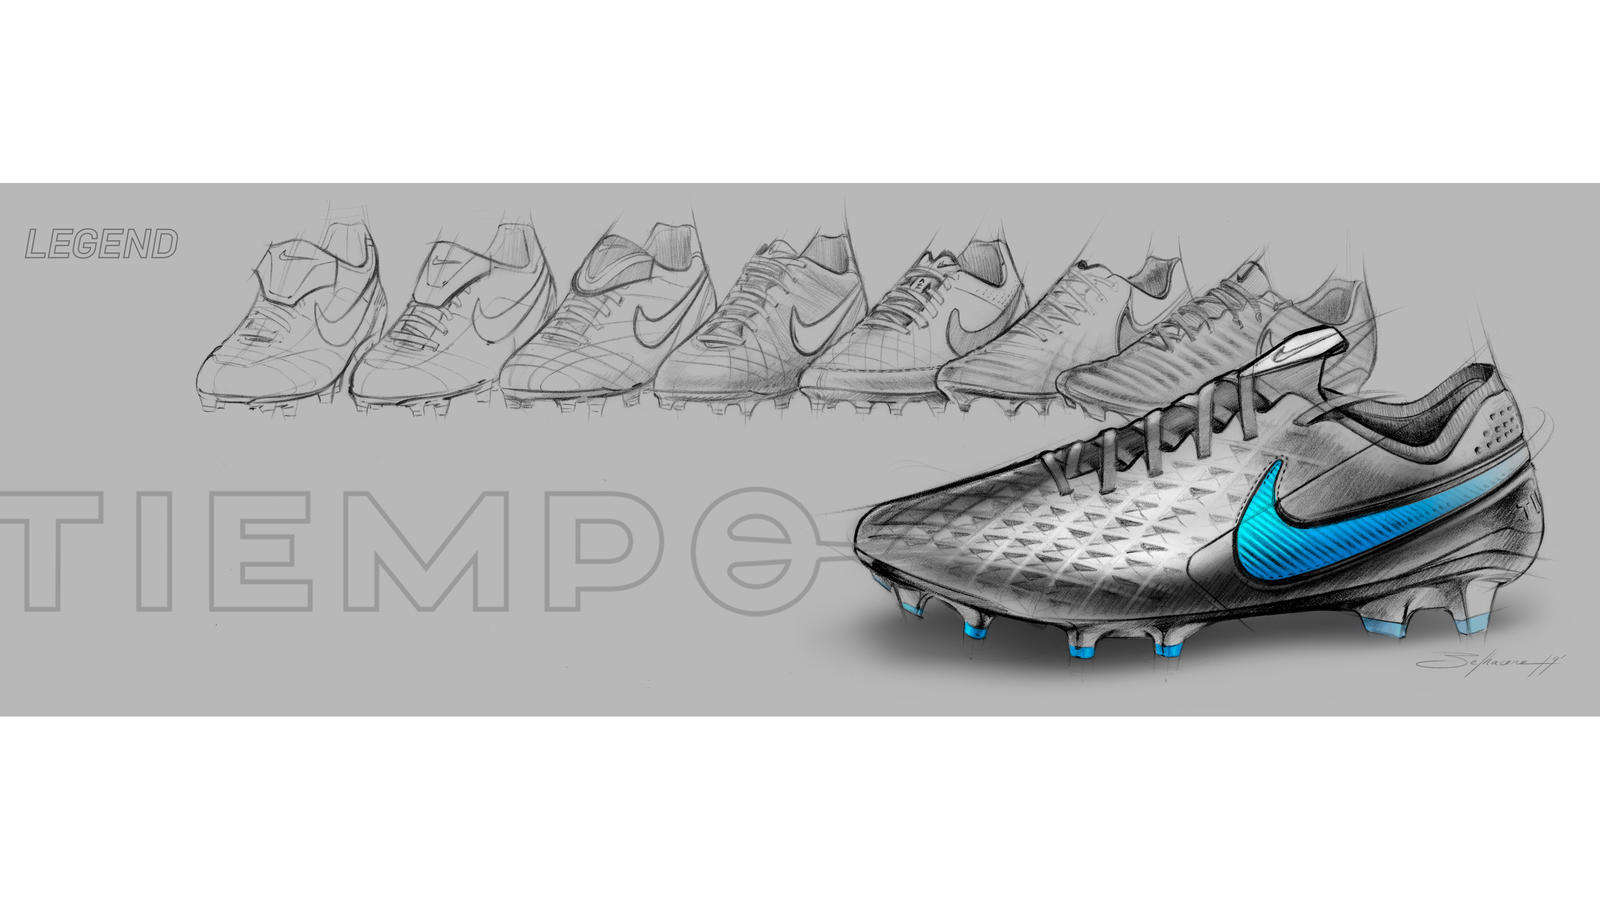 separation shoes aaaa7 06285 Nike Tiempo Legend 8 Official Images and Release Info - Nike ...